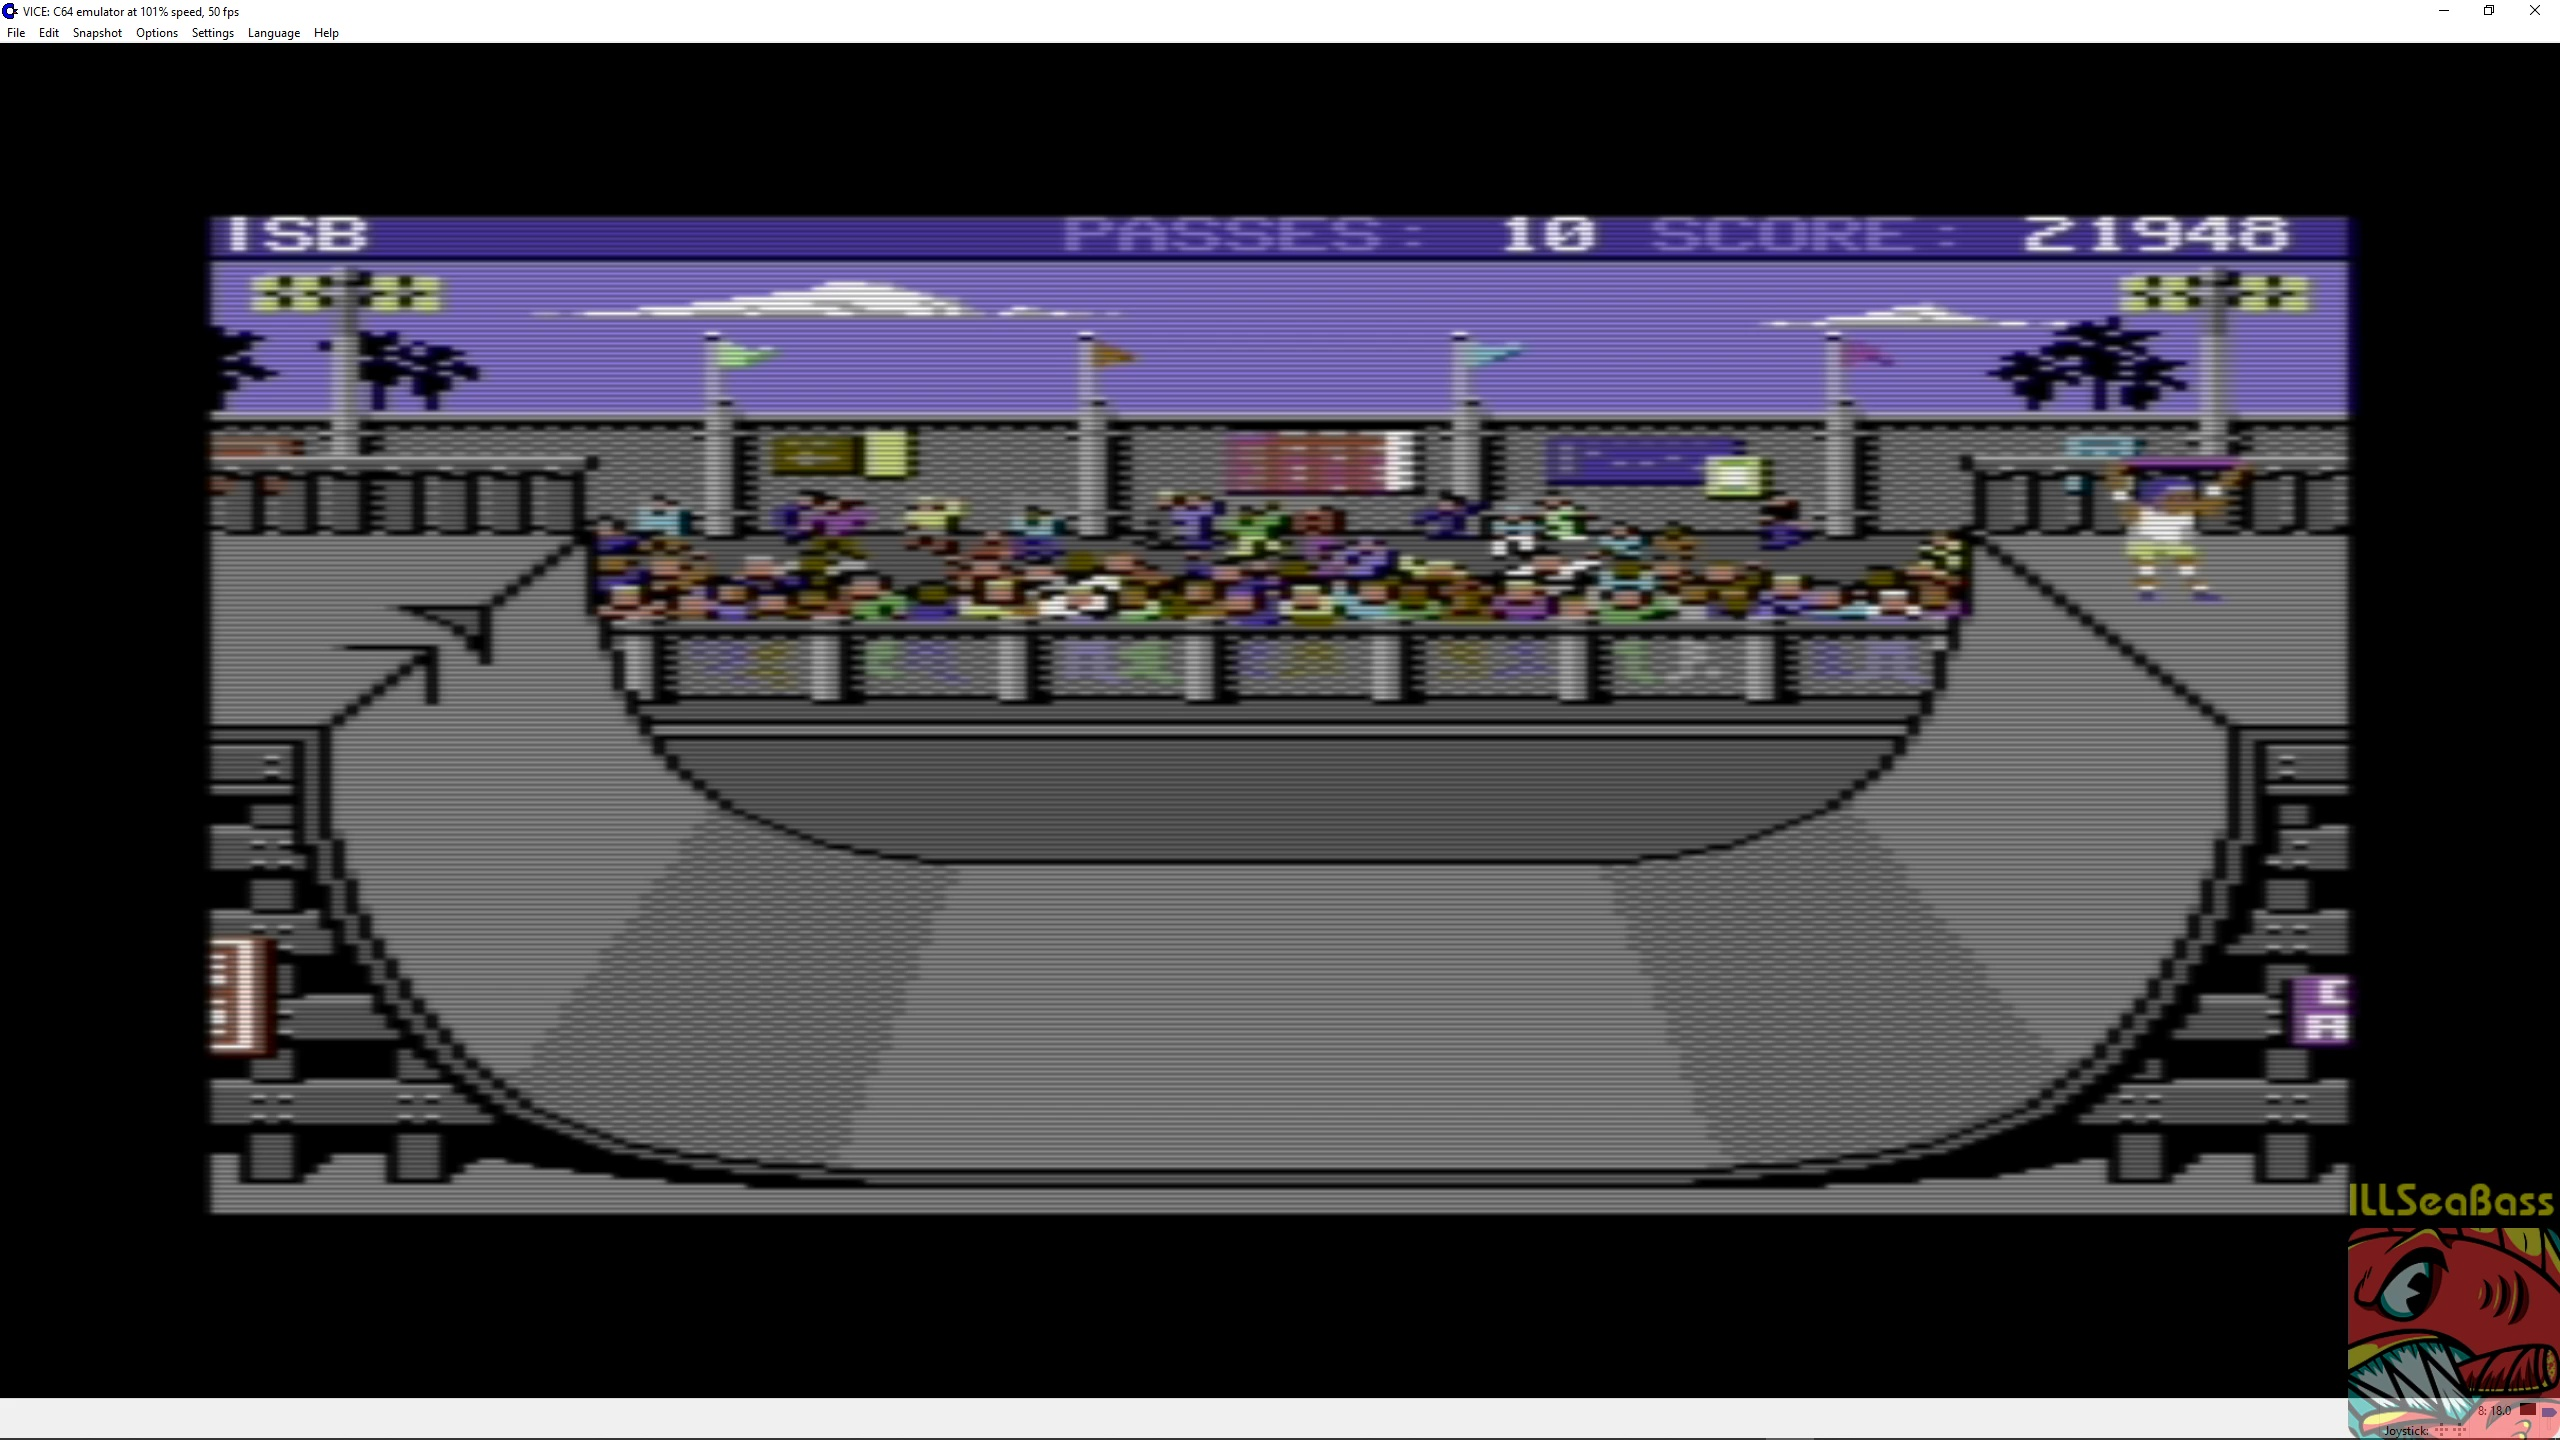 ILLSeaBass: Skate or Die [Ramp Freestyle] (Commodore 64 Emulated) 21,948 points on 2018-05-11 07:49:07